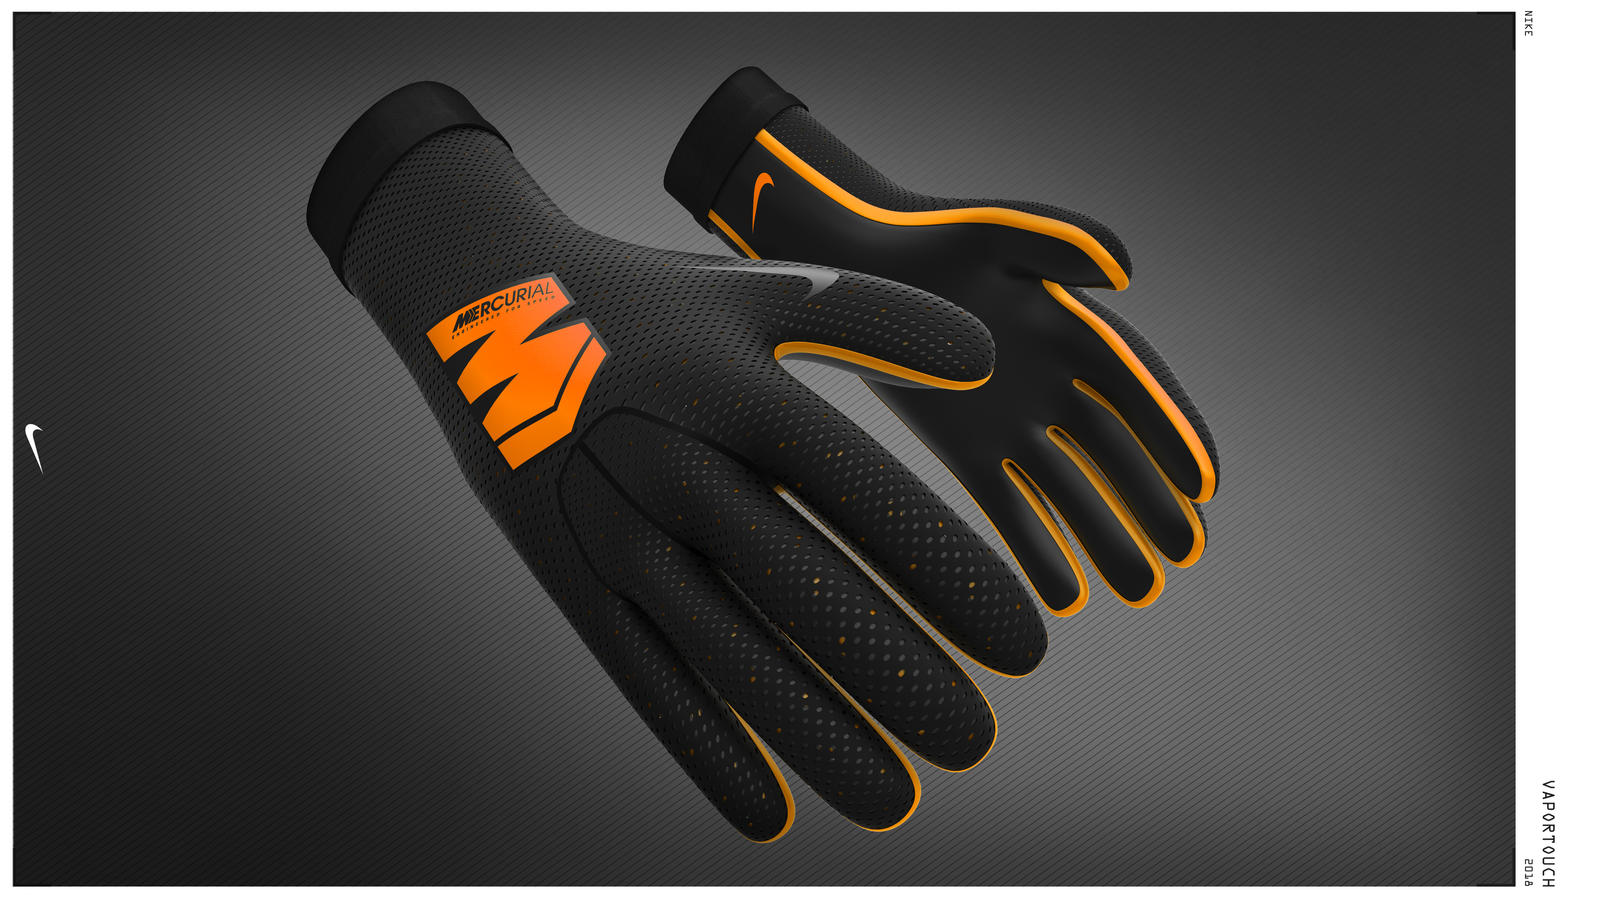 Nike Mercurial Touch Elite Goalkeeper Glove - Nike News